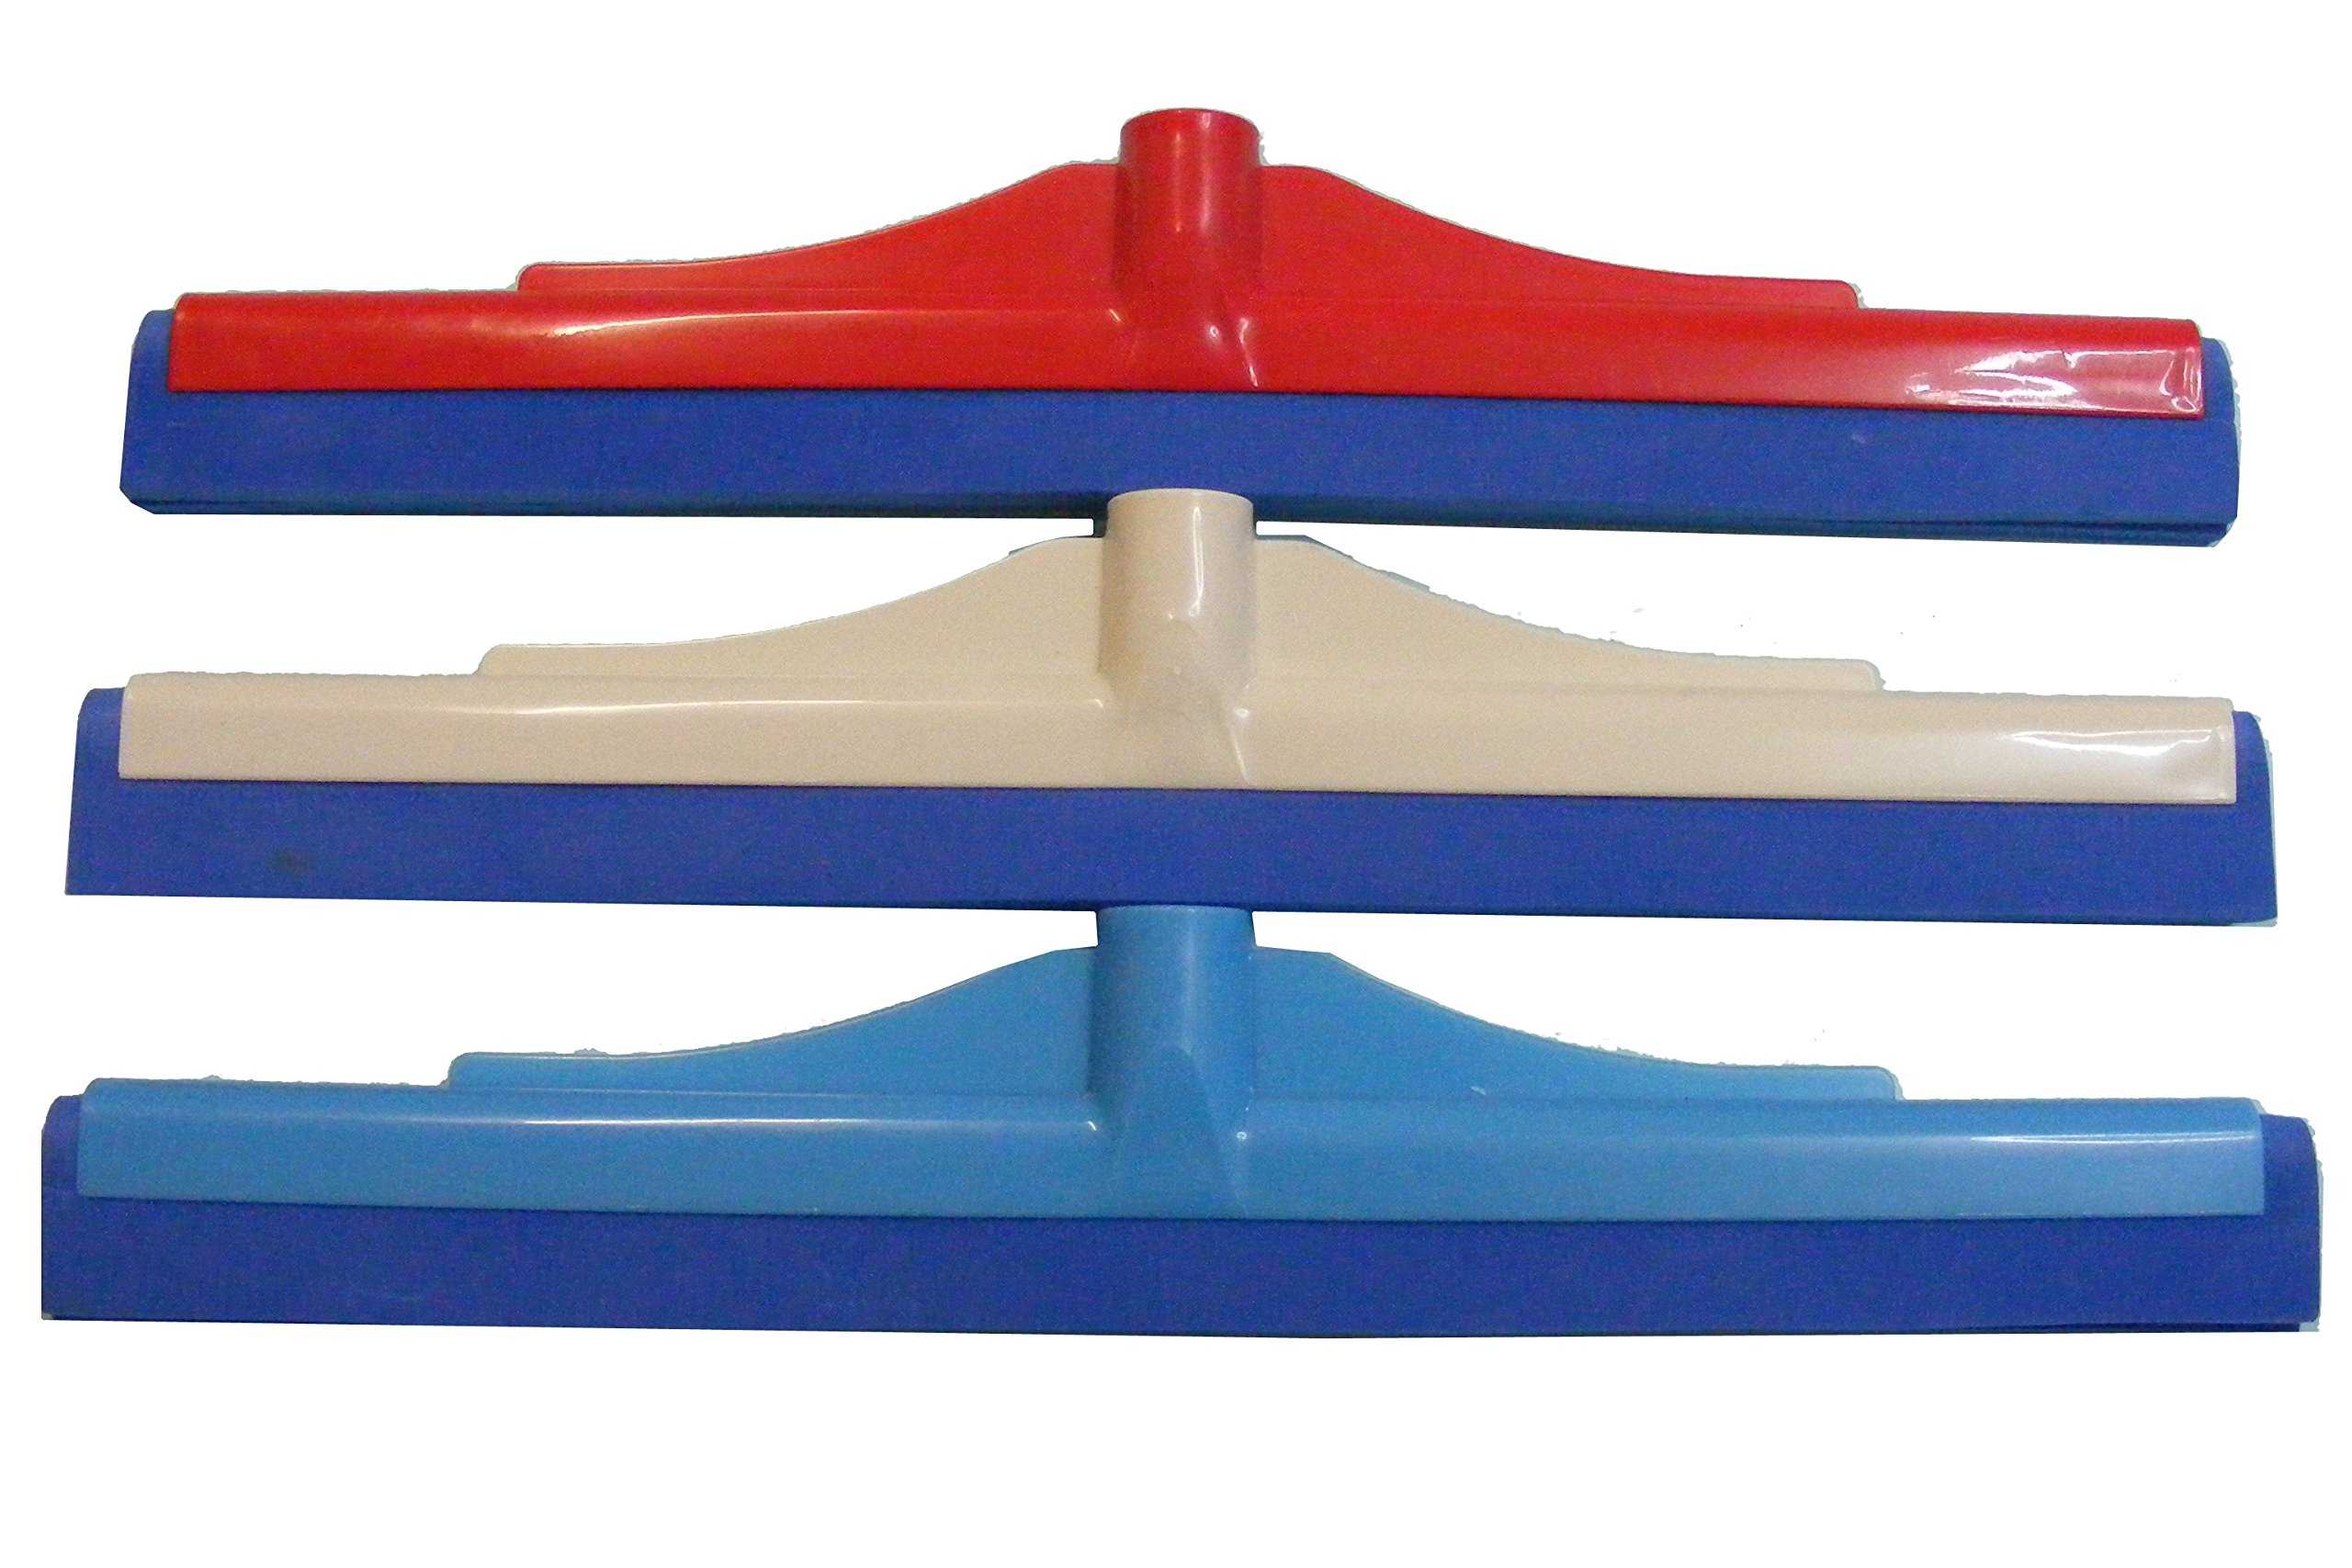 CLEANING Washing Floor Squeegee Wiper 16'' By CatchTheWave - PACK OF 3 - Double Foam Rubber - Wiping Drying Wet Rooms Window Garden Deck Car PERFECT For Wood, Tile, Marble, Glass - COLOR MAY VARY